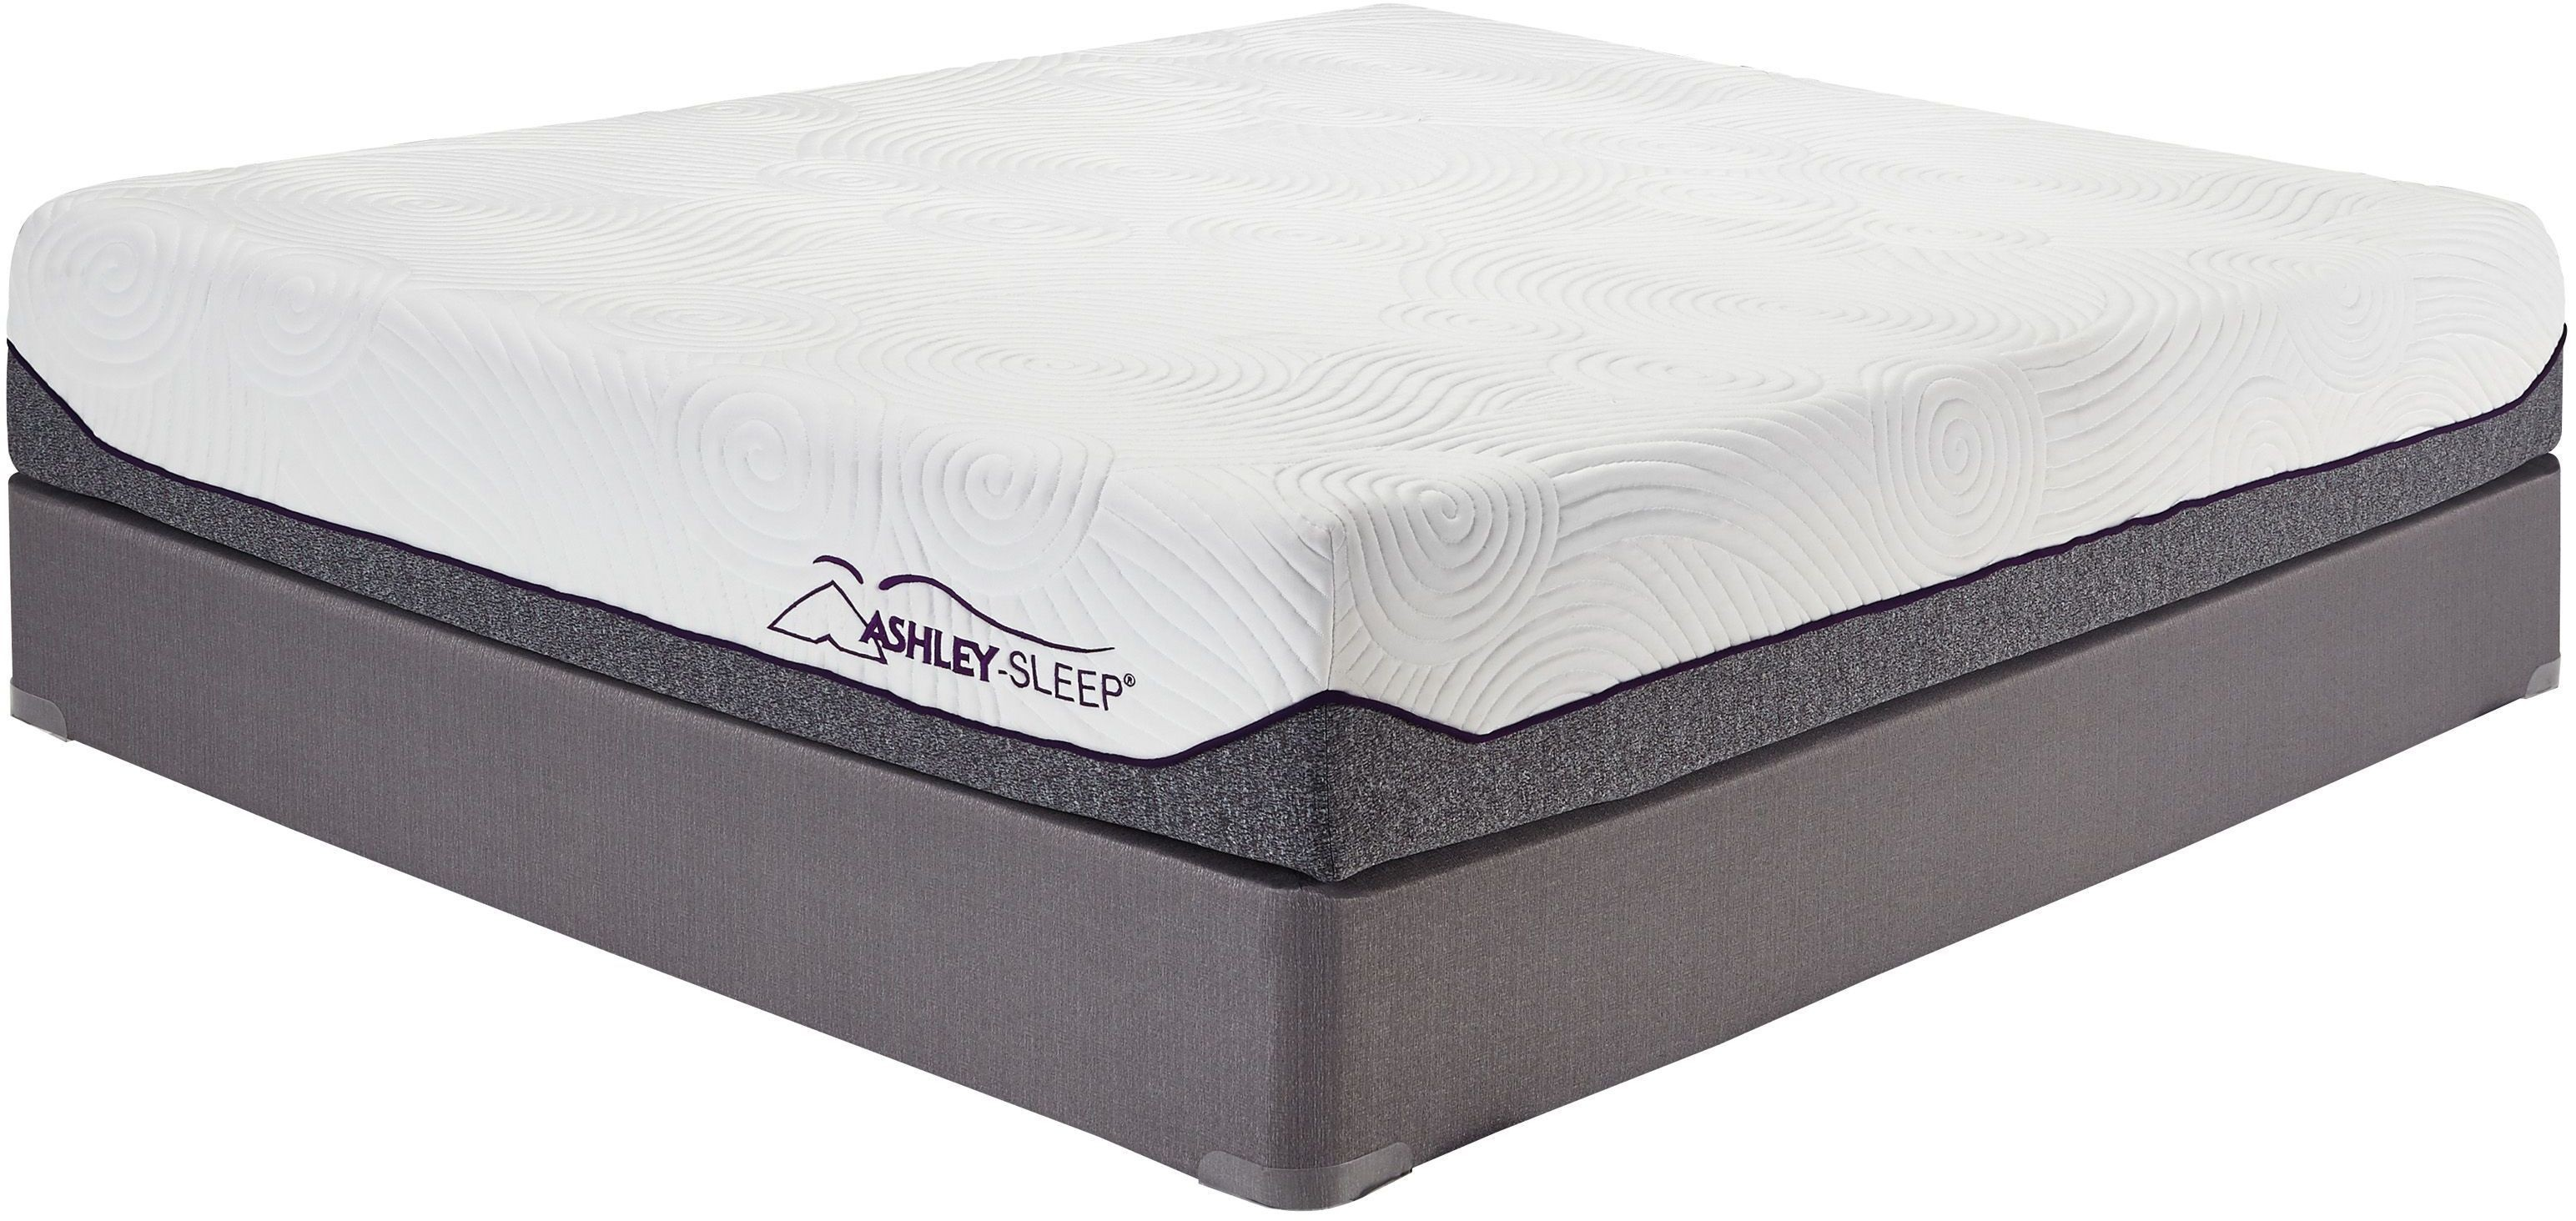 10 inch memory foam white twin mattress m94511 ashley. Black Bedroom Furniture Sets. Home Design Ideas